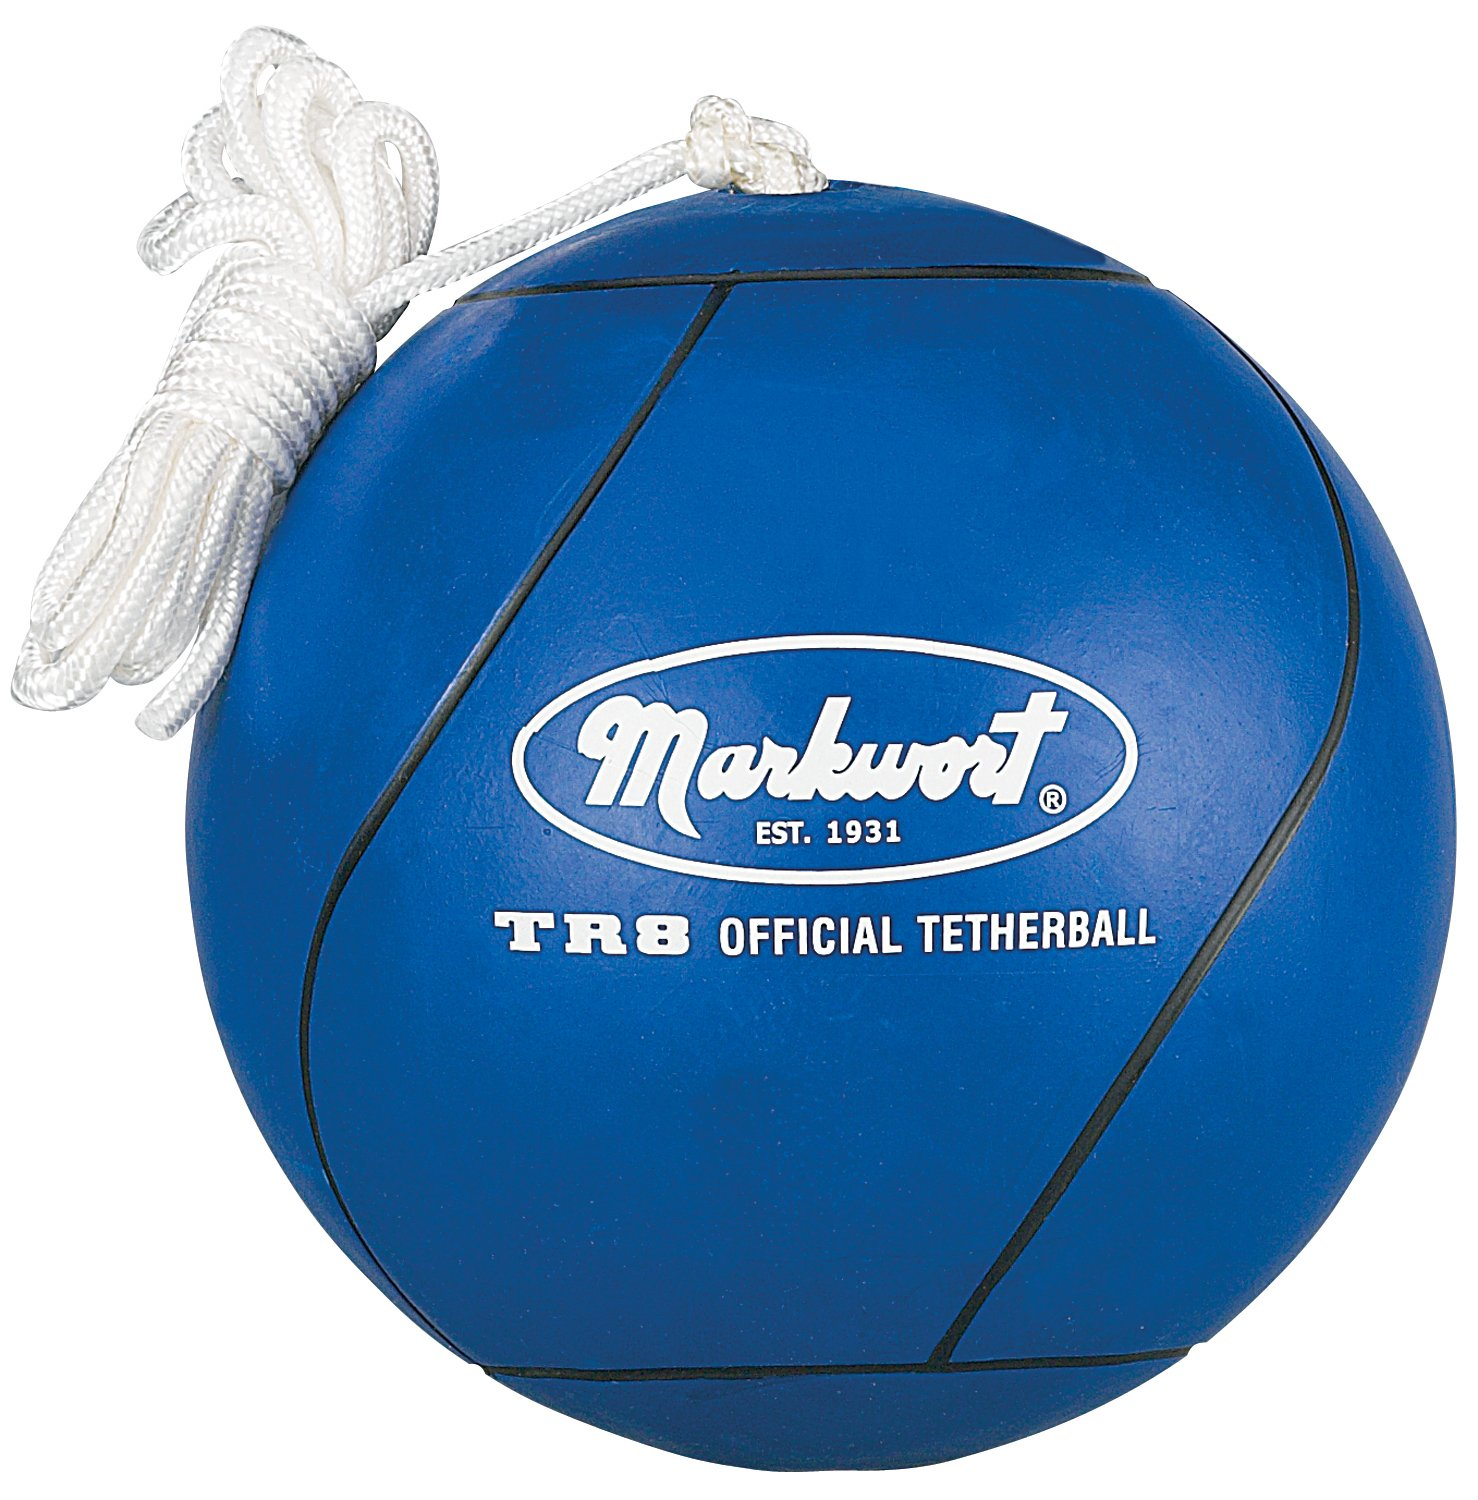 Markwort Official Tetherball (Royal Blue) by Markwort